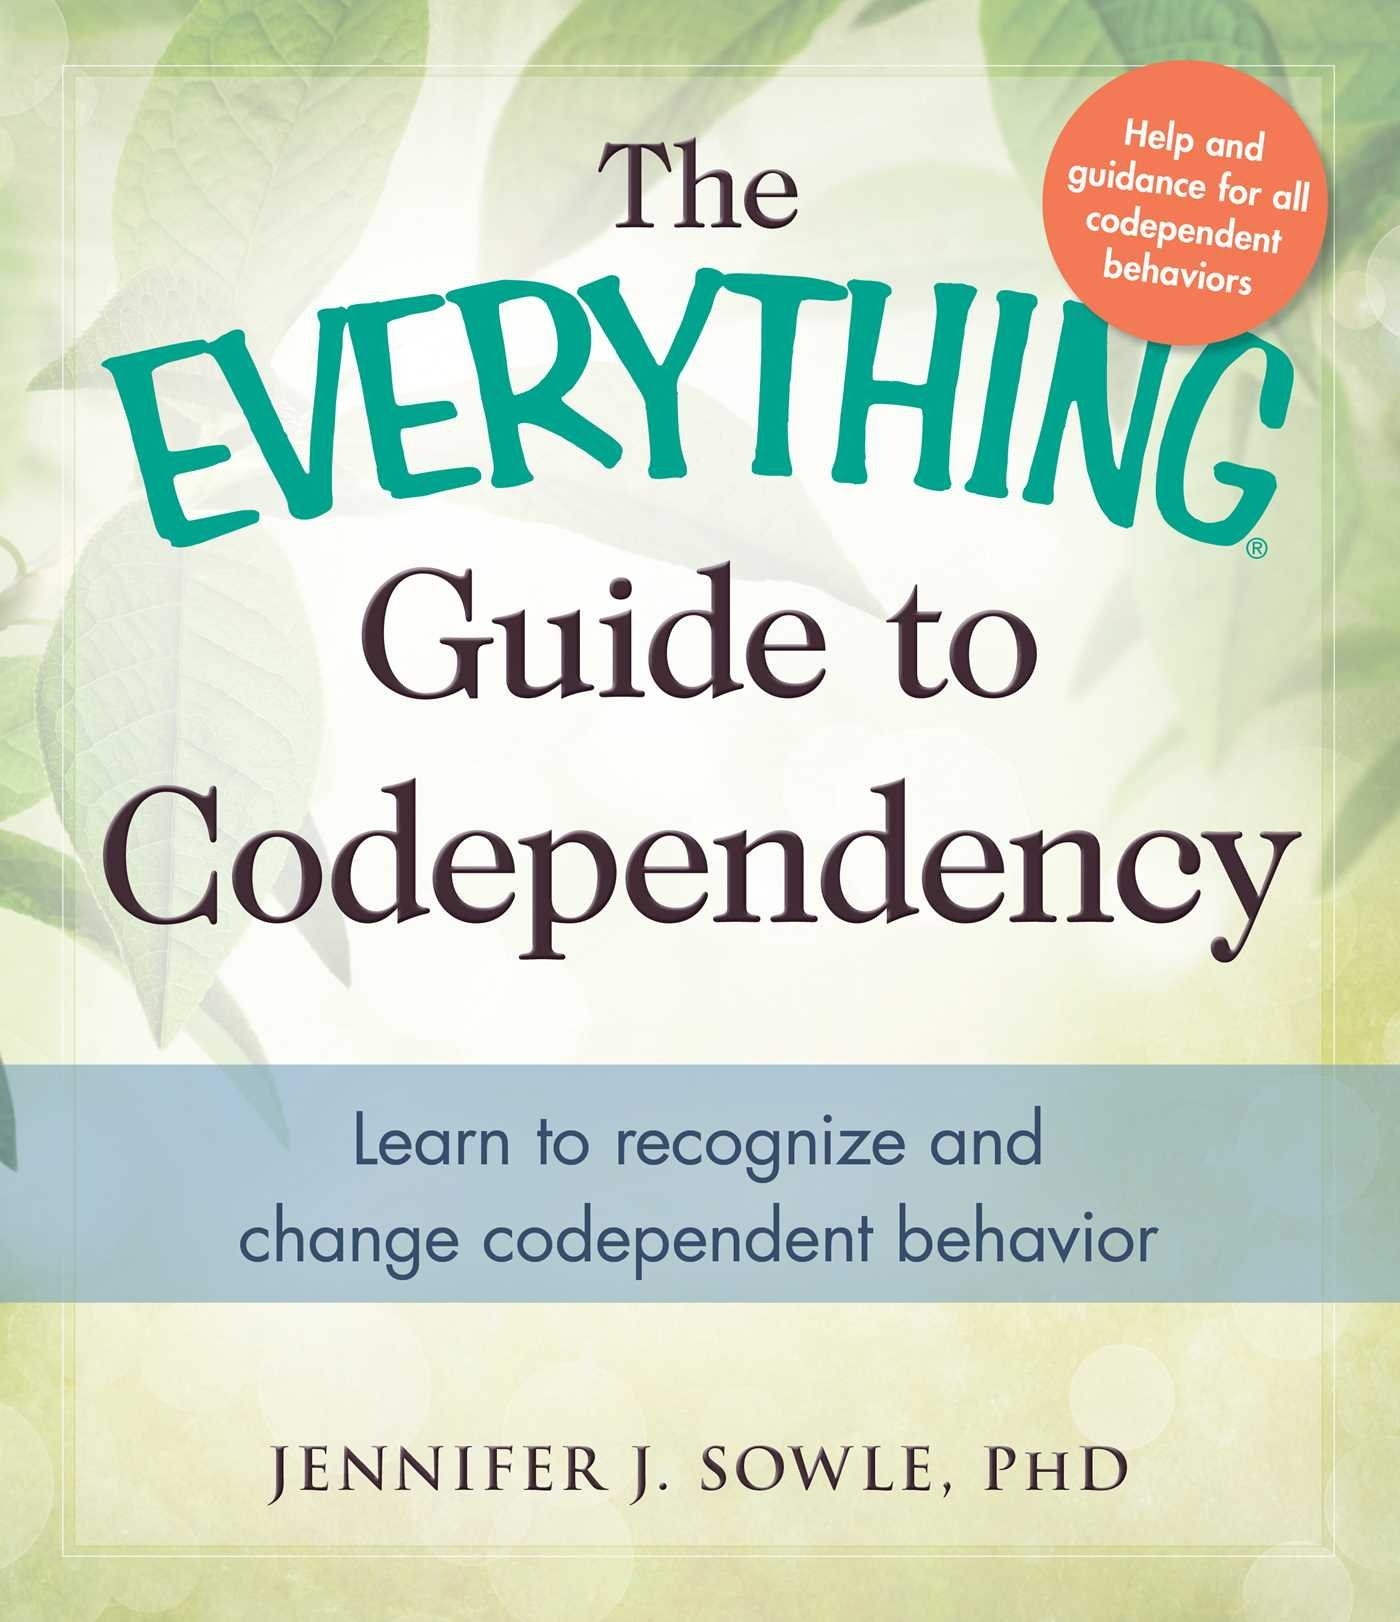 The Everything Guide to Codependency: Learn to recognize and change  codependent behavior: Jennifer Sowle: 0045079573901: Amazon.com: Books